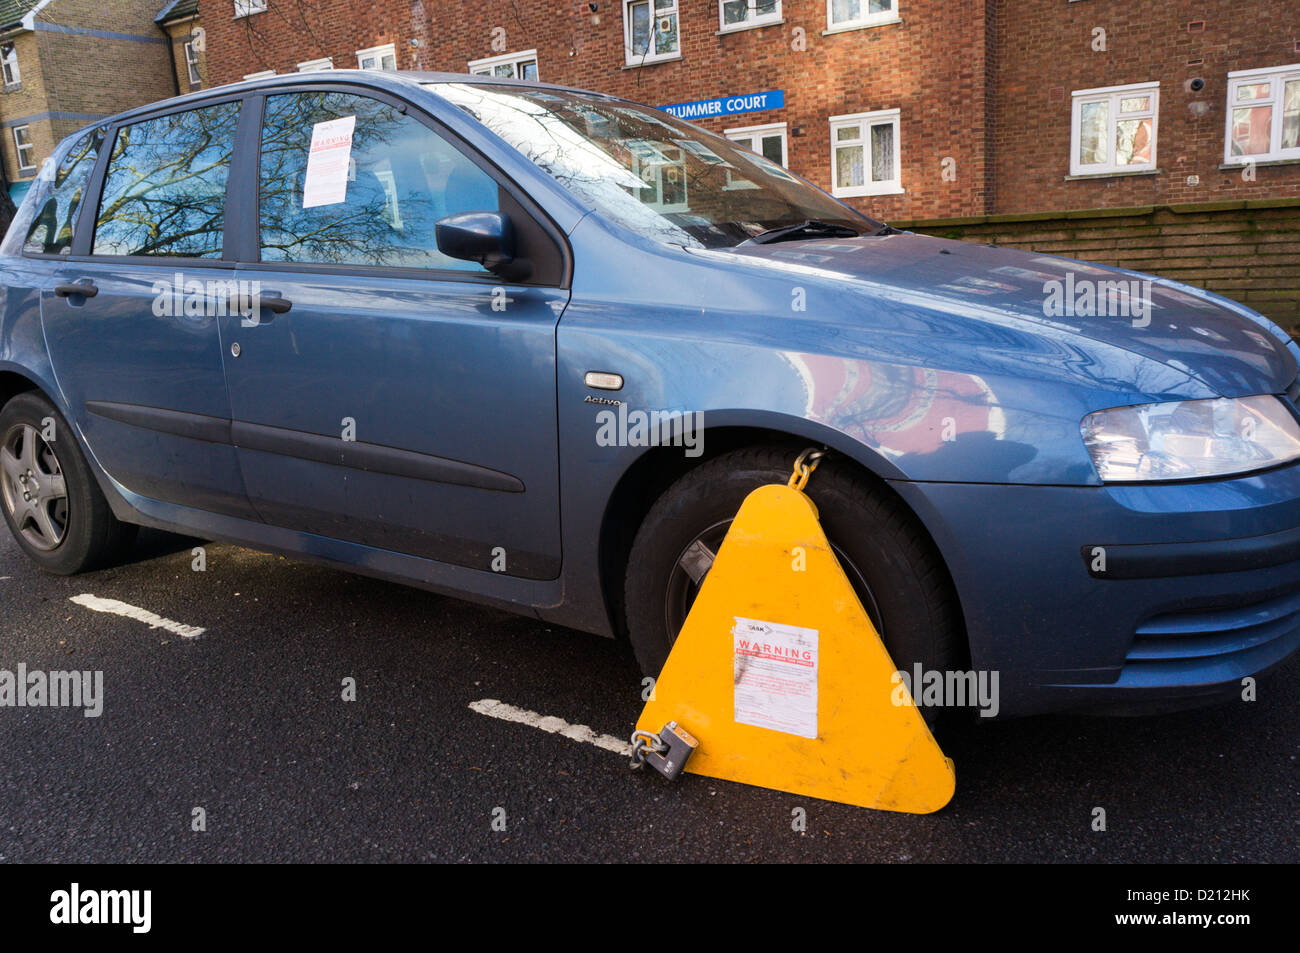 An illegally parked car that has been wheel-clamped. - Stock Image